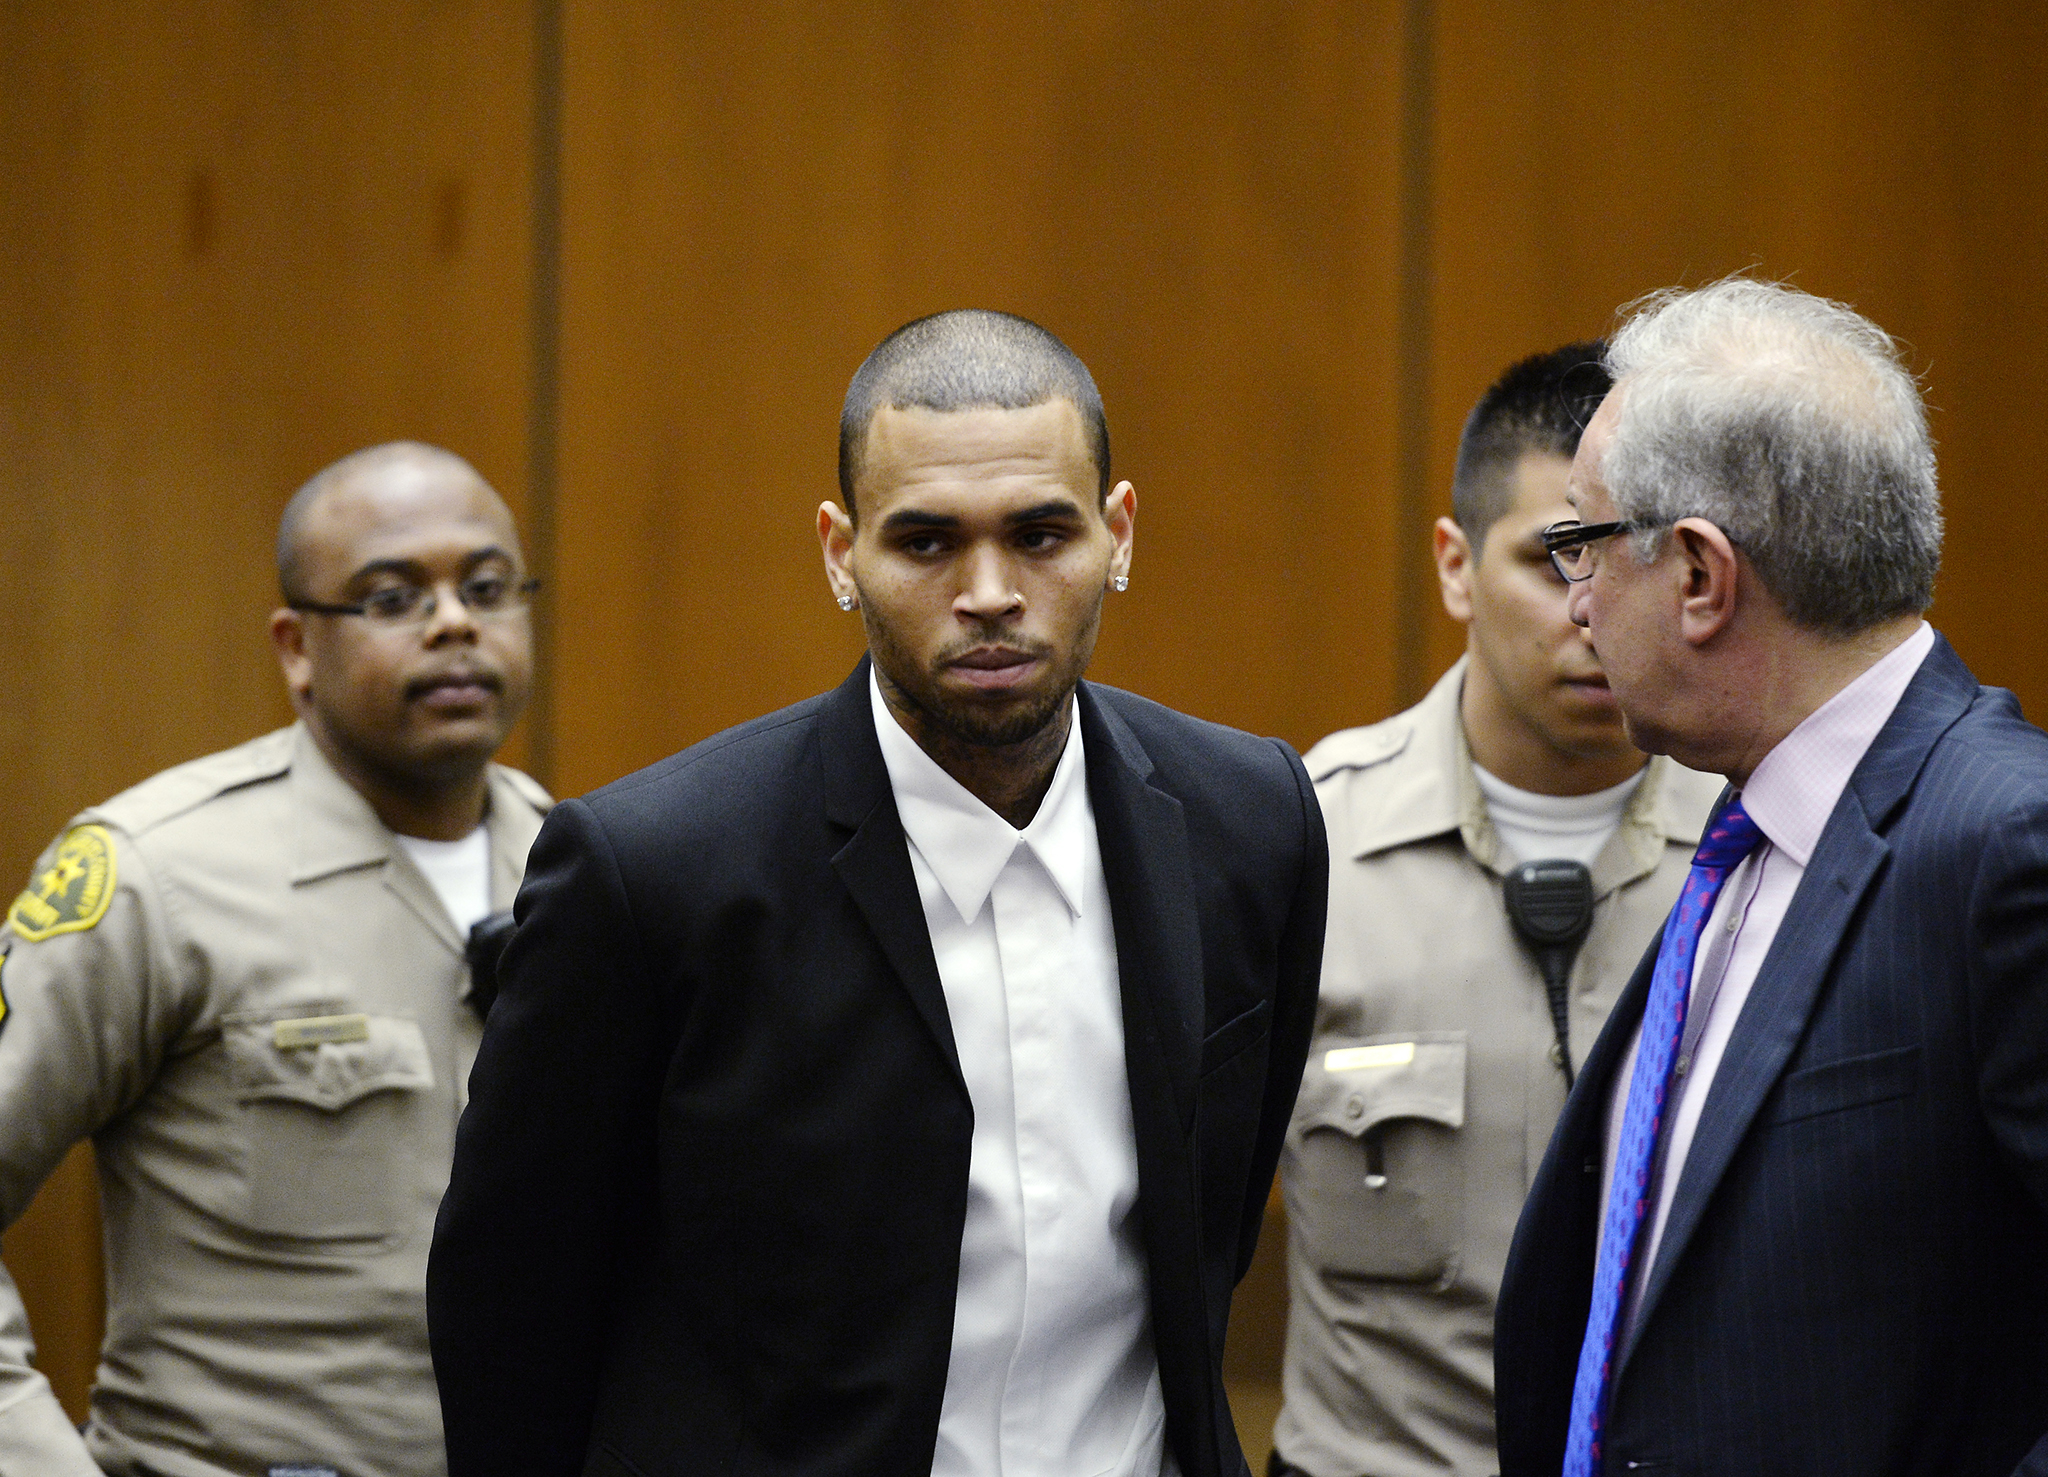 Chris Brown looks unhappy in court on August 16, 2013 (Getty Images)